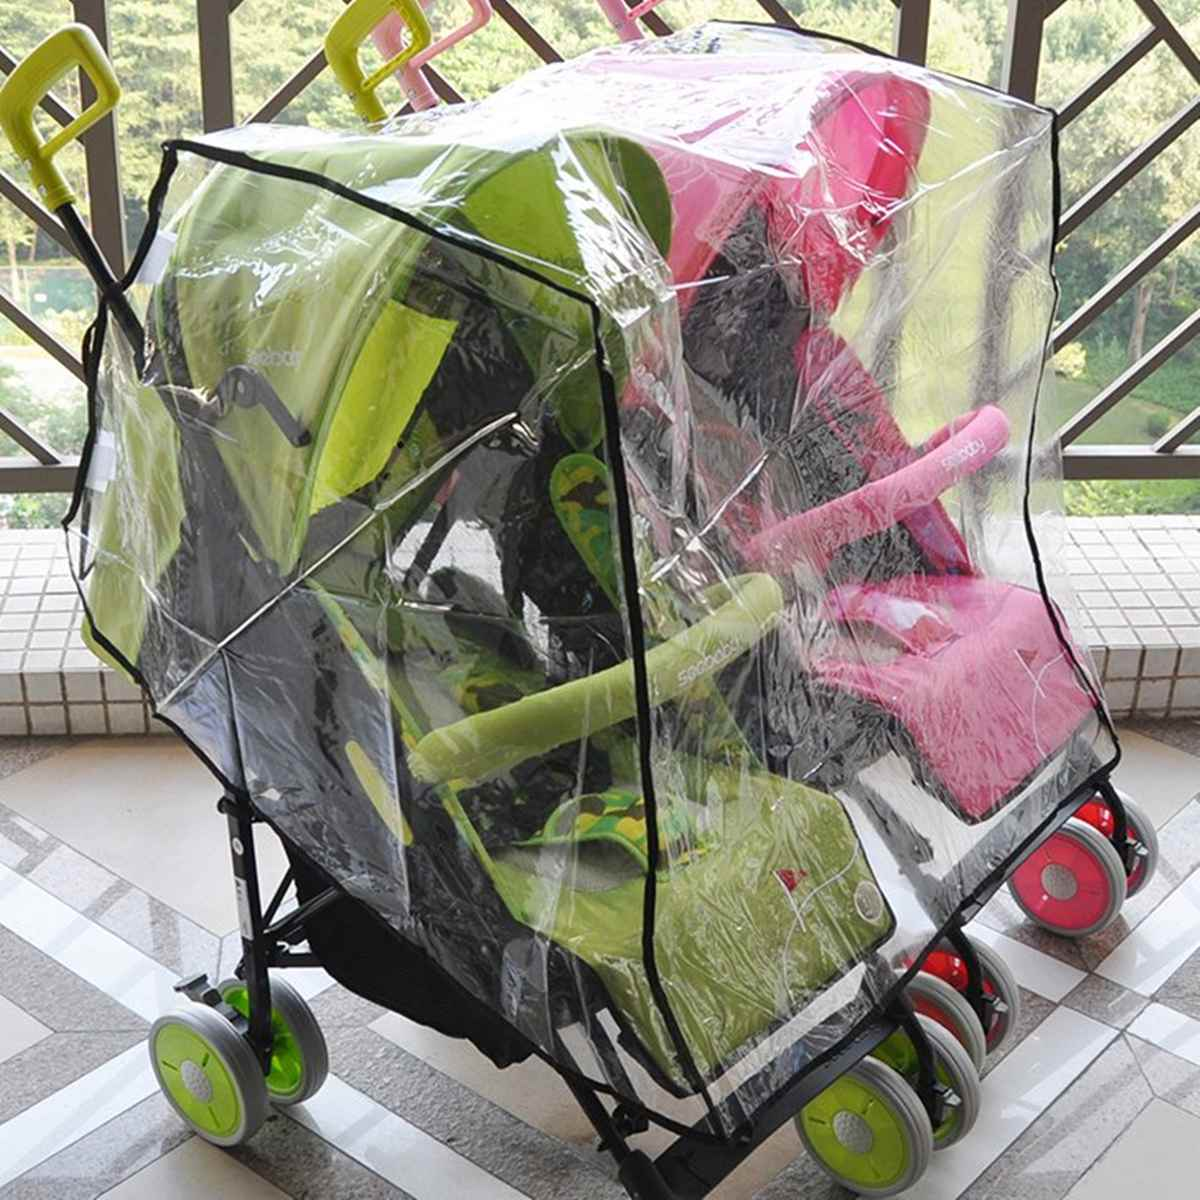 Rain Cover Stroller Protection Twins Baby Waterproof Trolley With Universal Double Sitting Side By Side Stroller Accessories